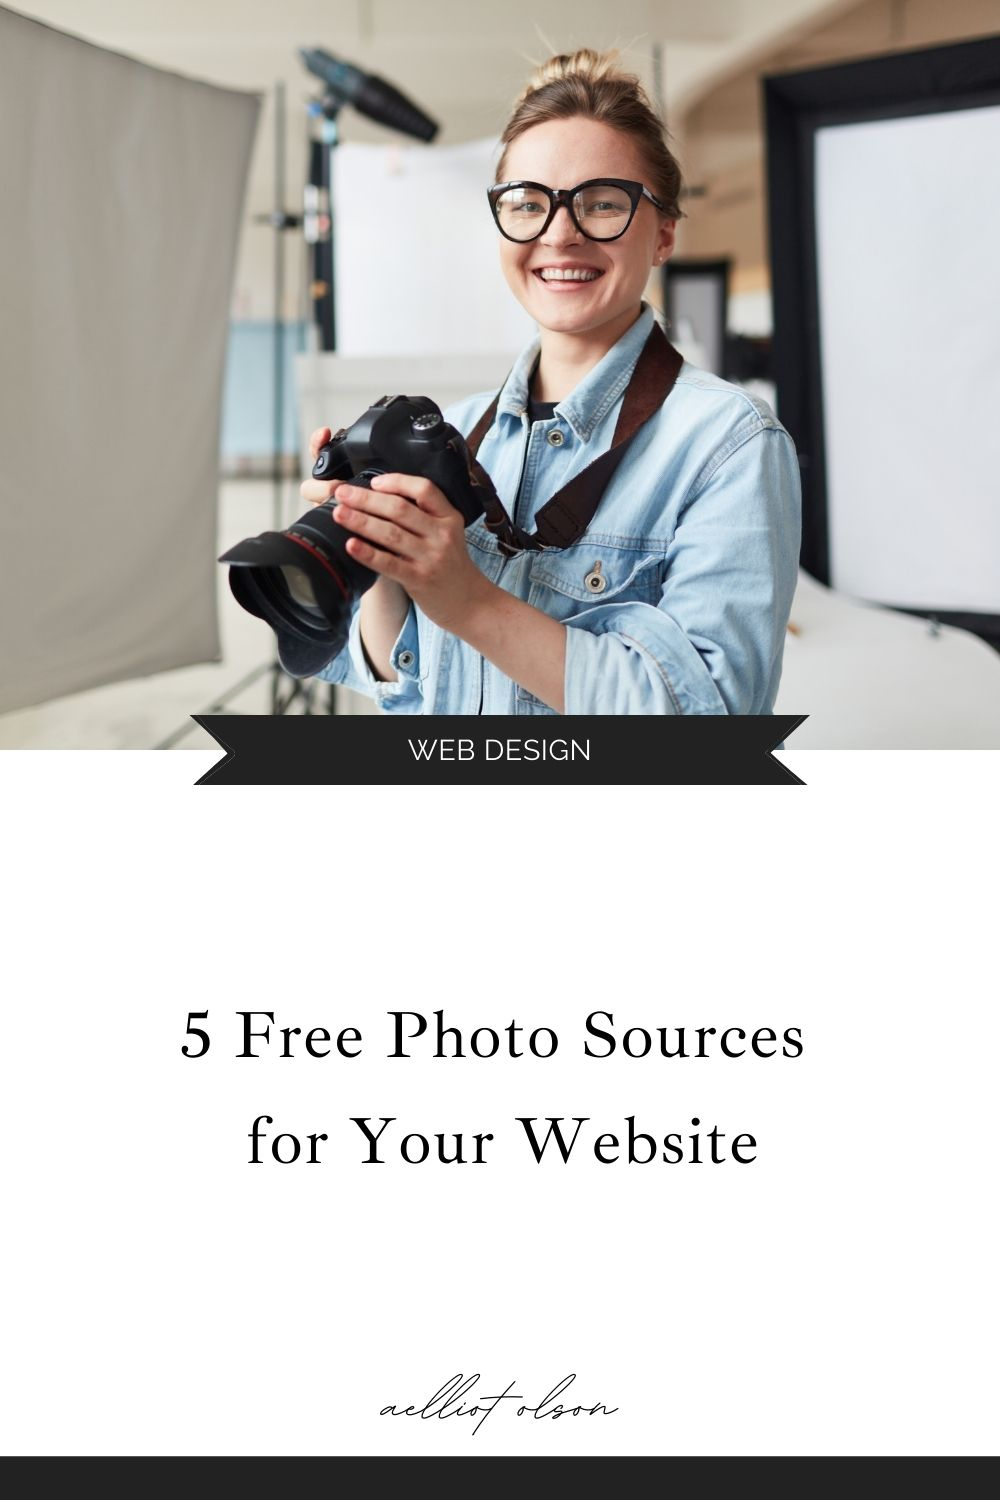 5 free photo sources for your website